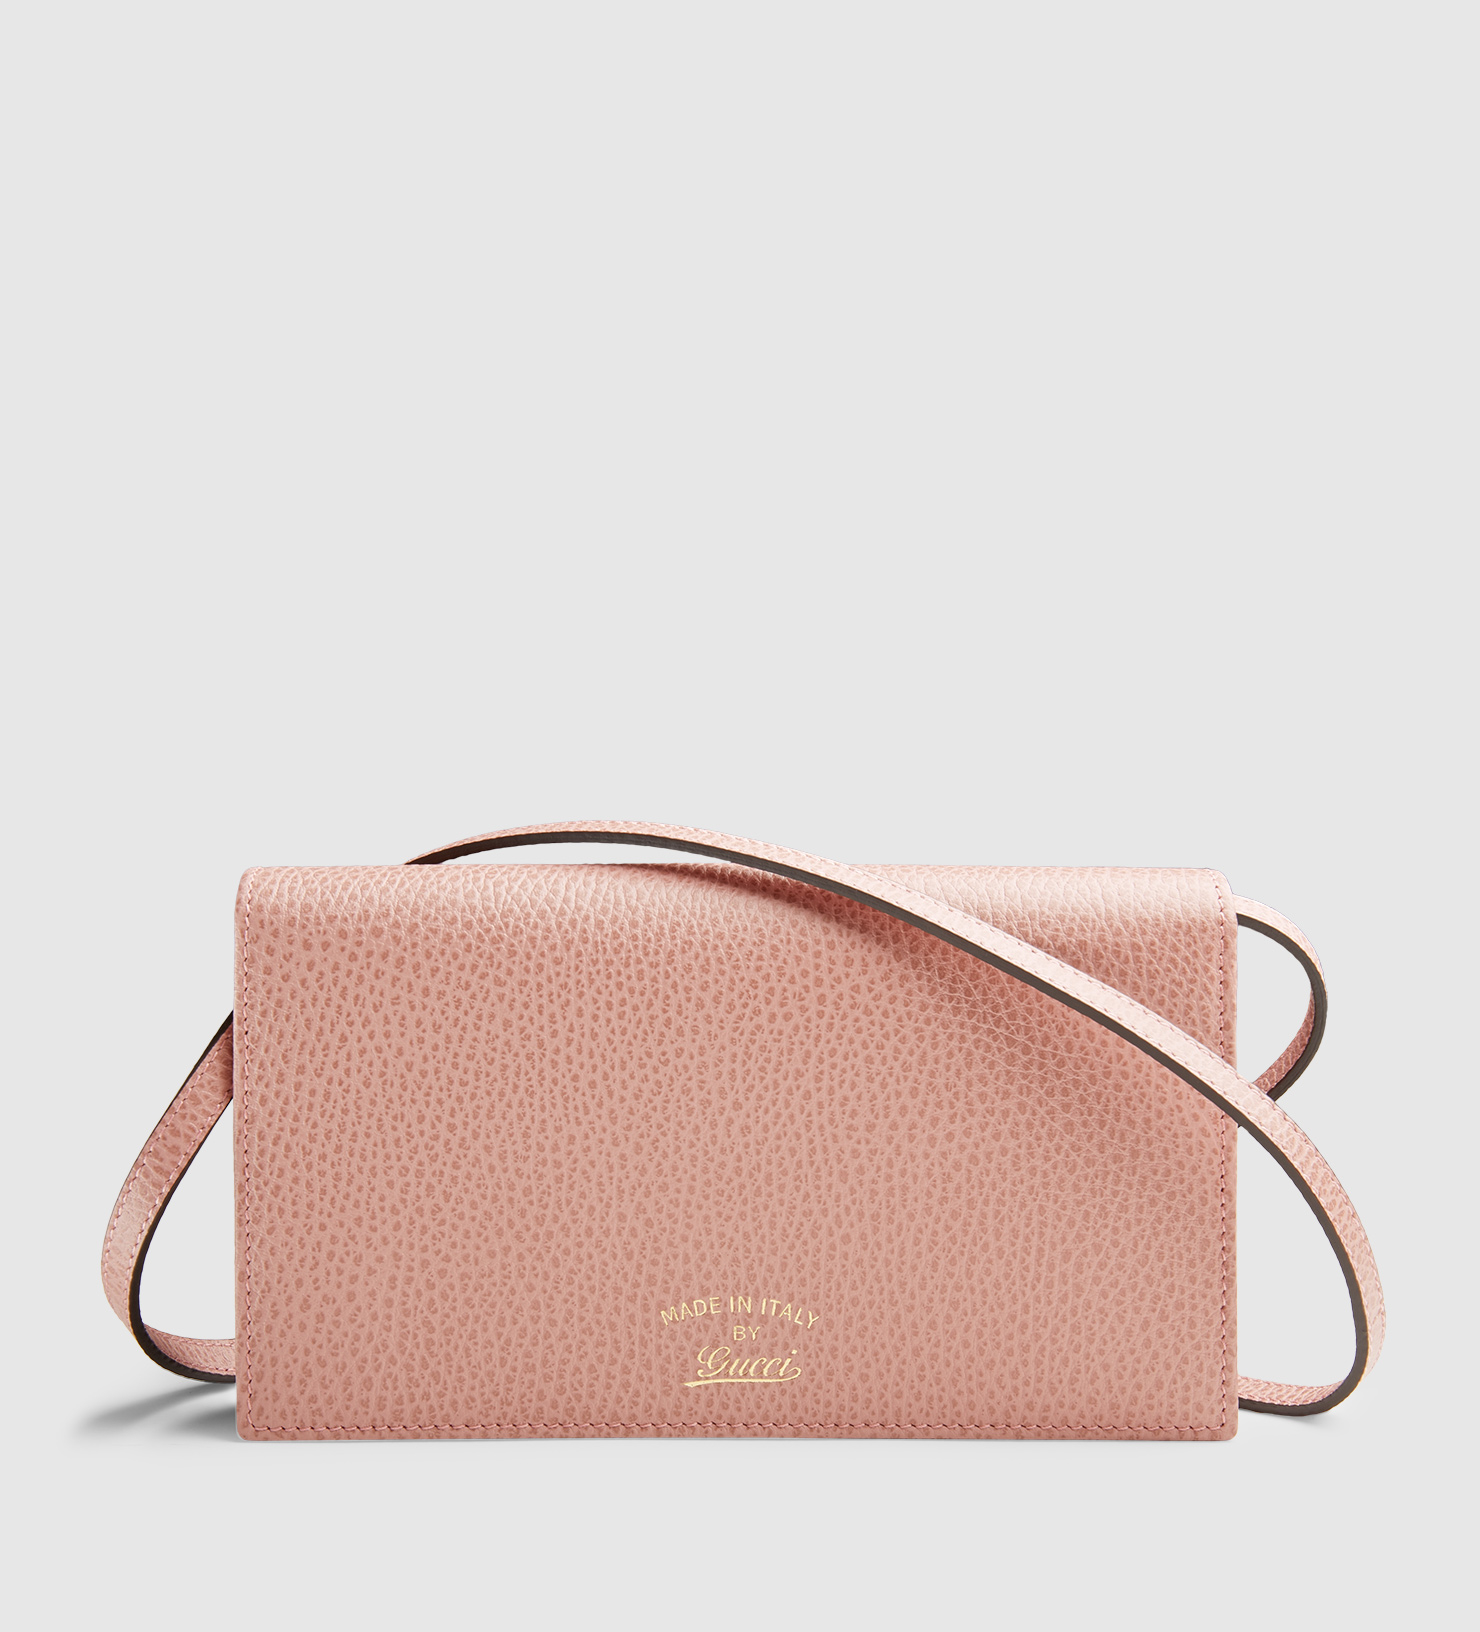 56fc66010d9e9d Gucci Swing Leather Wallet With Strap in Pink - Lyst